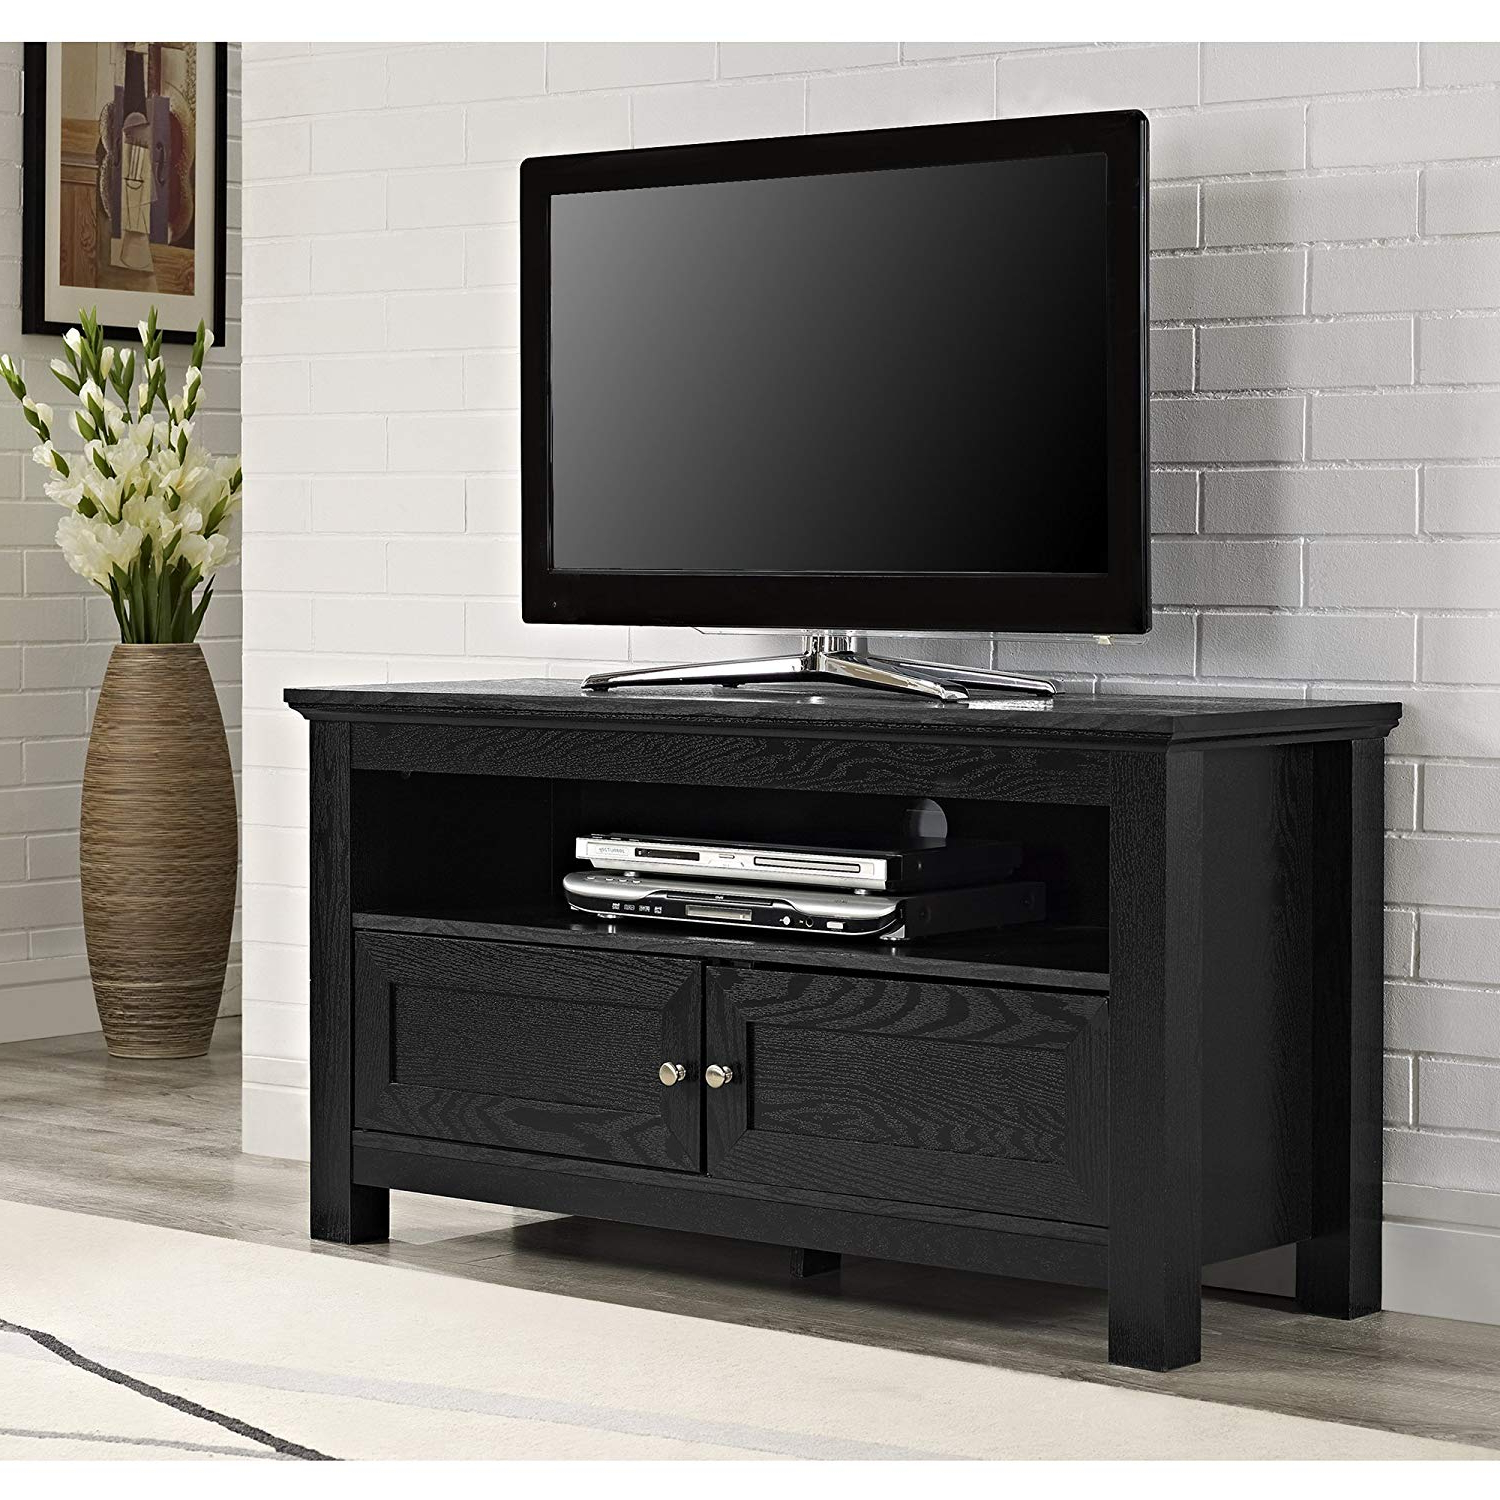 Amazon: Walker Edison 44 Inches Cortez Tv Stand Console, Black In Favorite Black Tv Stand With Glass Doors (Gallery 14 of 20)